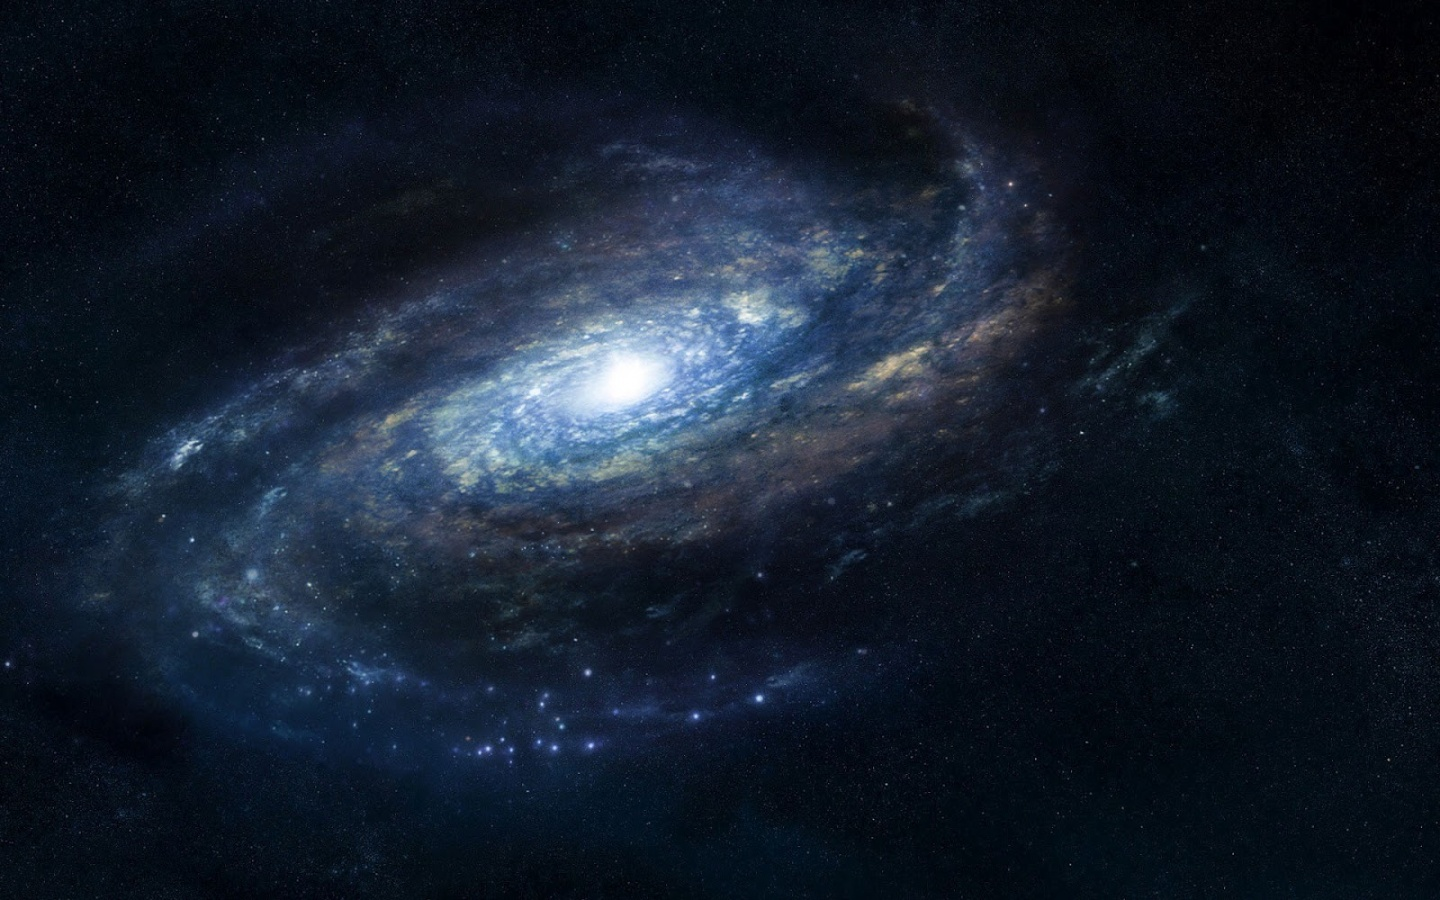 Space blue galaxy 1440 x 900 download close